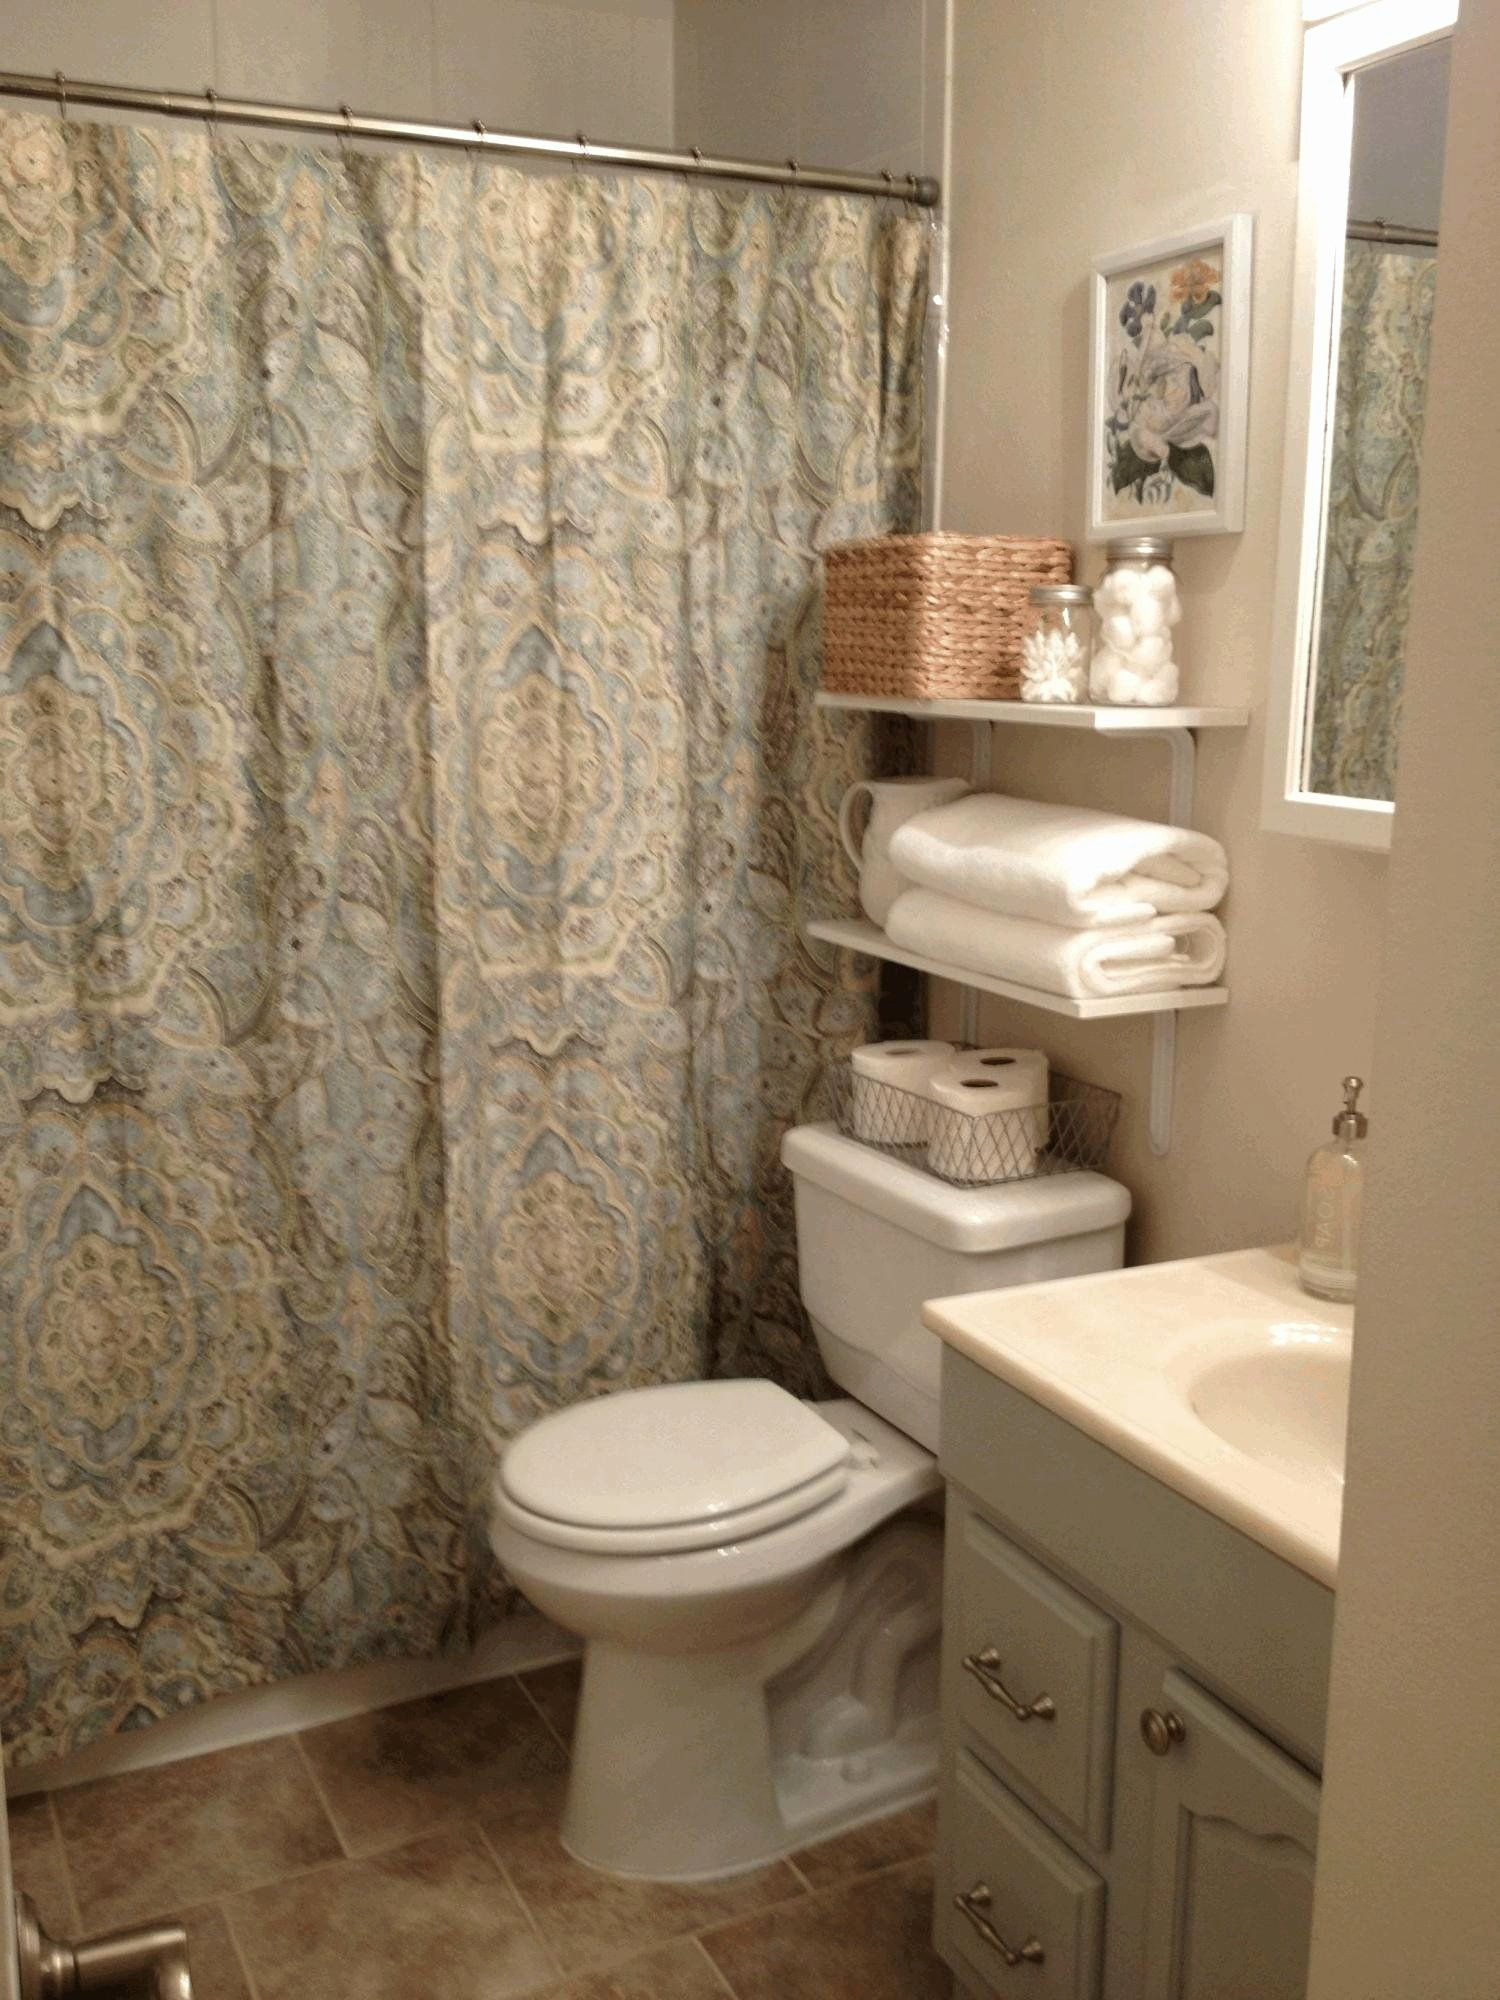 Bathroom Decorating Ideas Apartments Awesome Cute Apartment Bathroom Ideas Standing In 2020 Bathroom Decor Apartment Apartment Bathroom Bathroom Decor Apartment Small